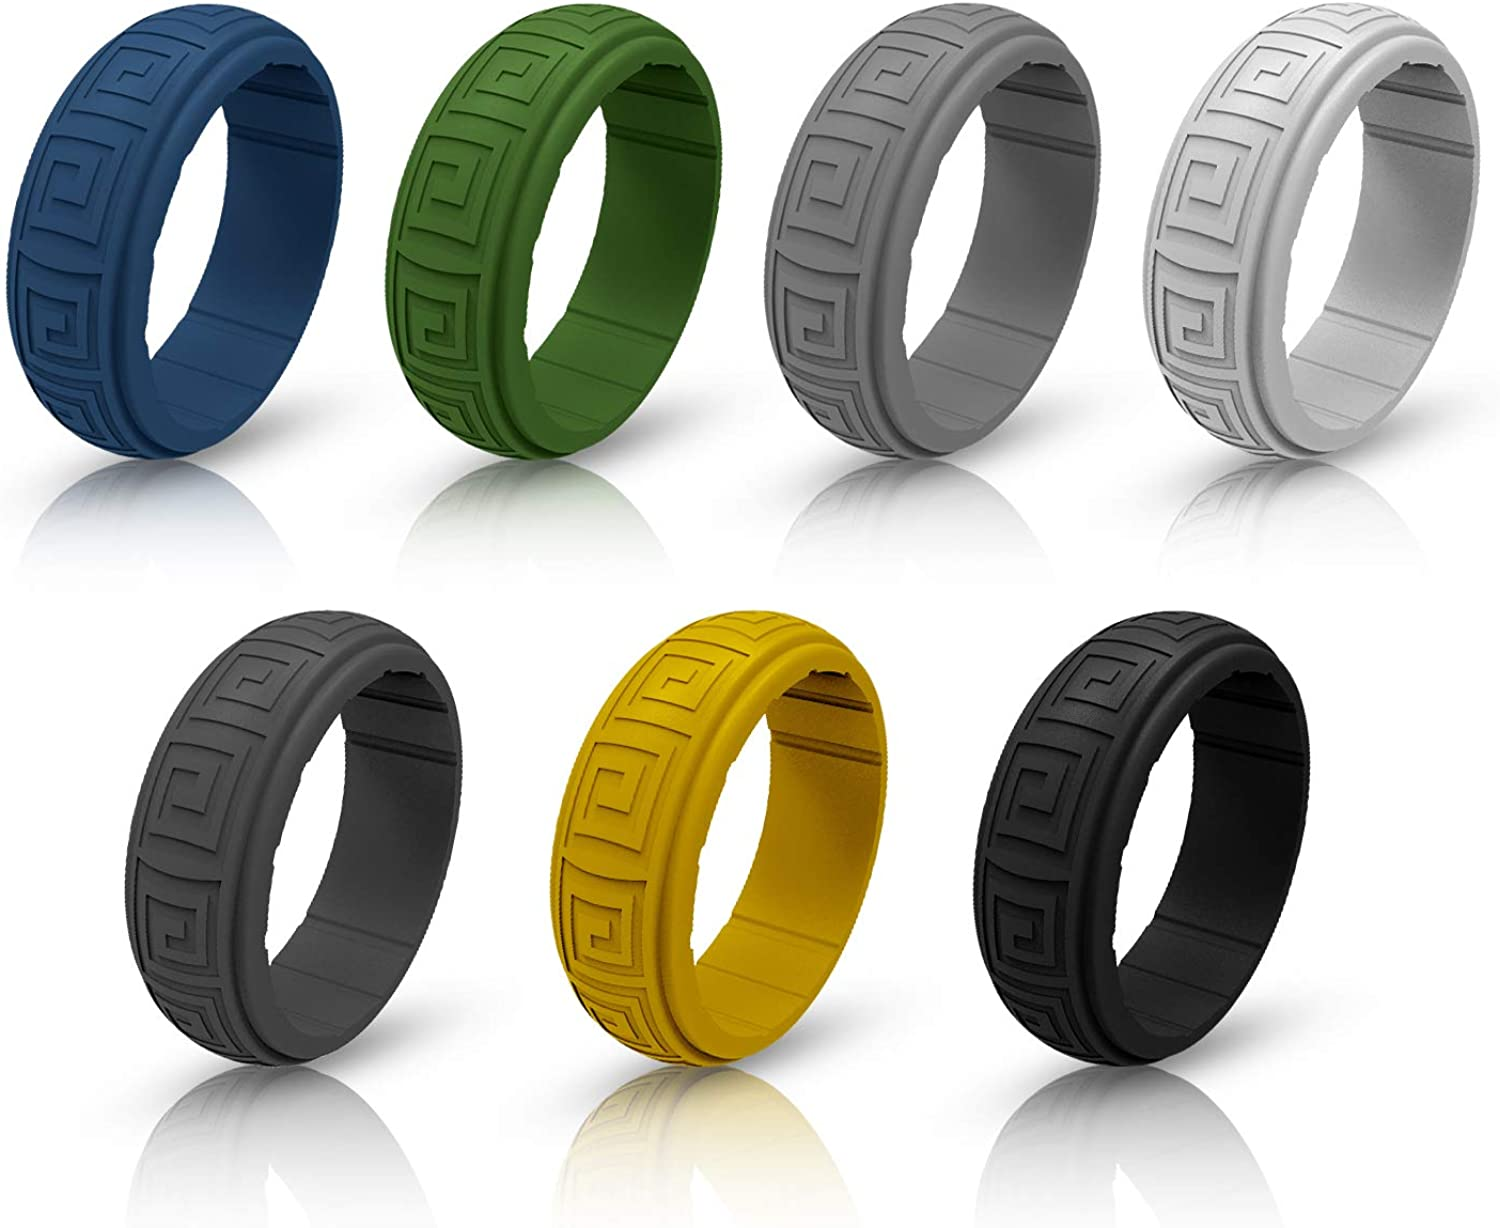 -10Pack 9 mm Wide Size 7 8 9 10 11 12 13 14 Ninge Silicone Rings,Silicone Wedding Ring Tire Tread Design Rubber Wedding Bands for Men